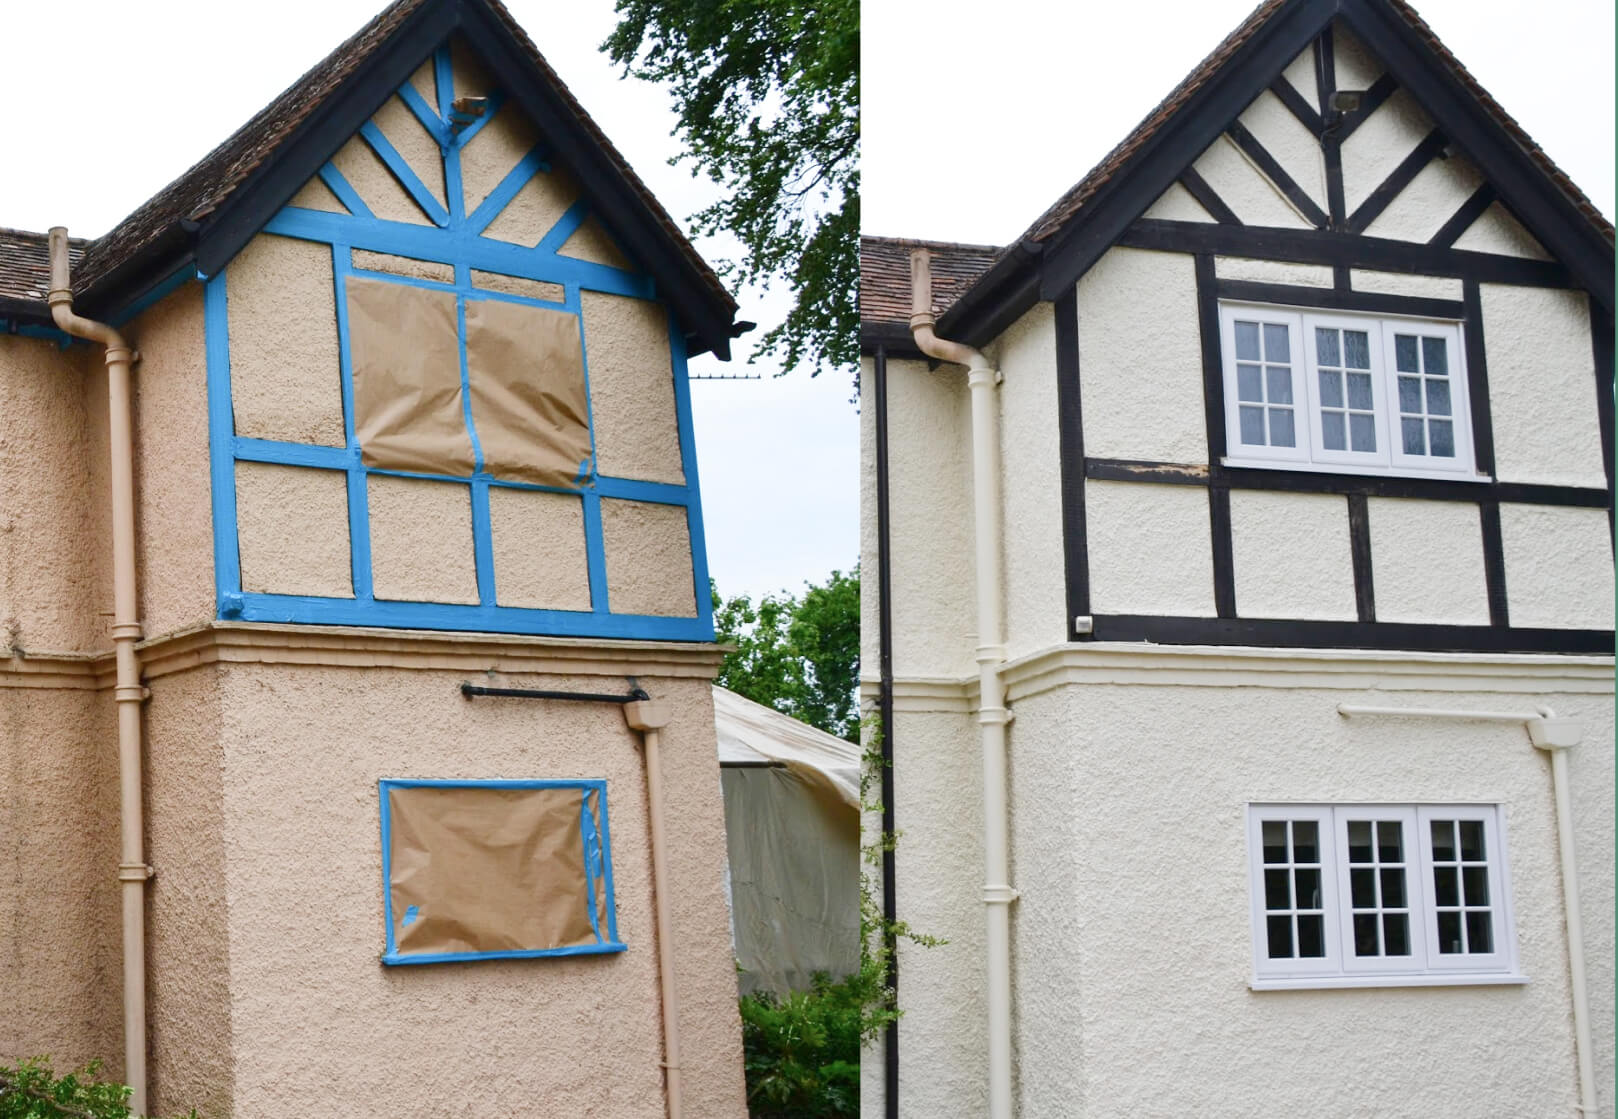 What is masonry paint? All you need to know about masonry paint and how to use it